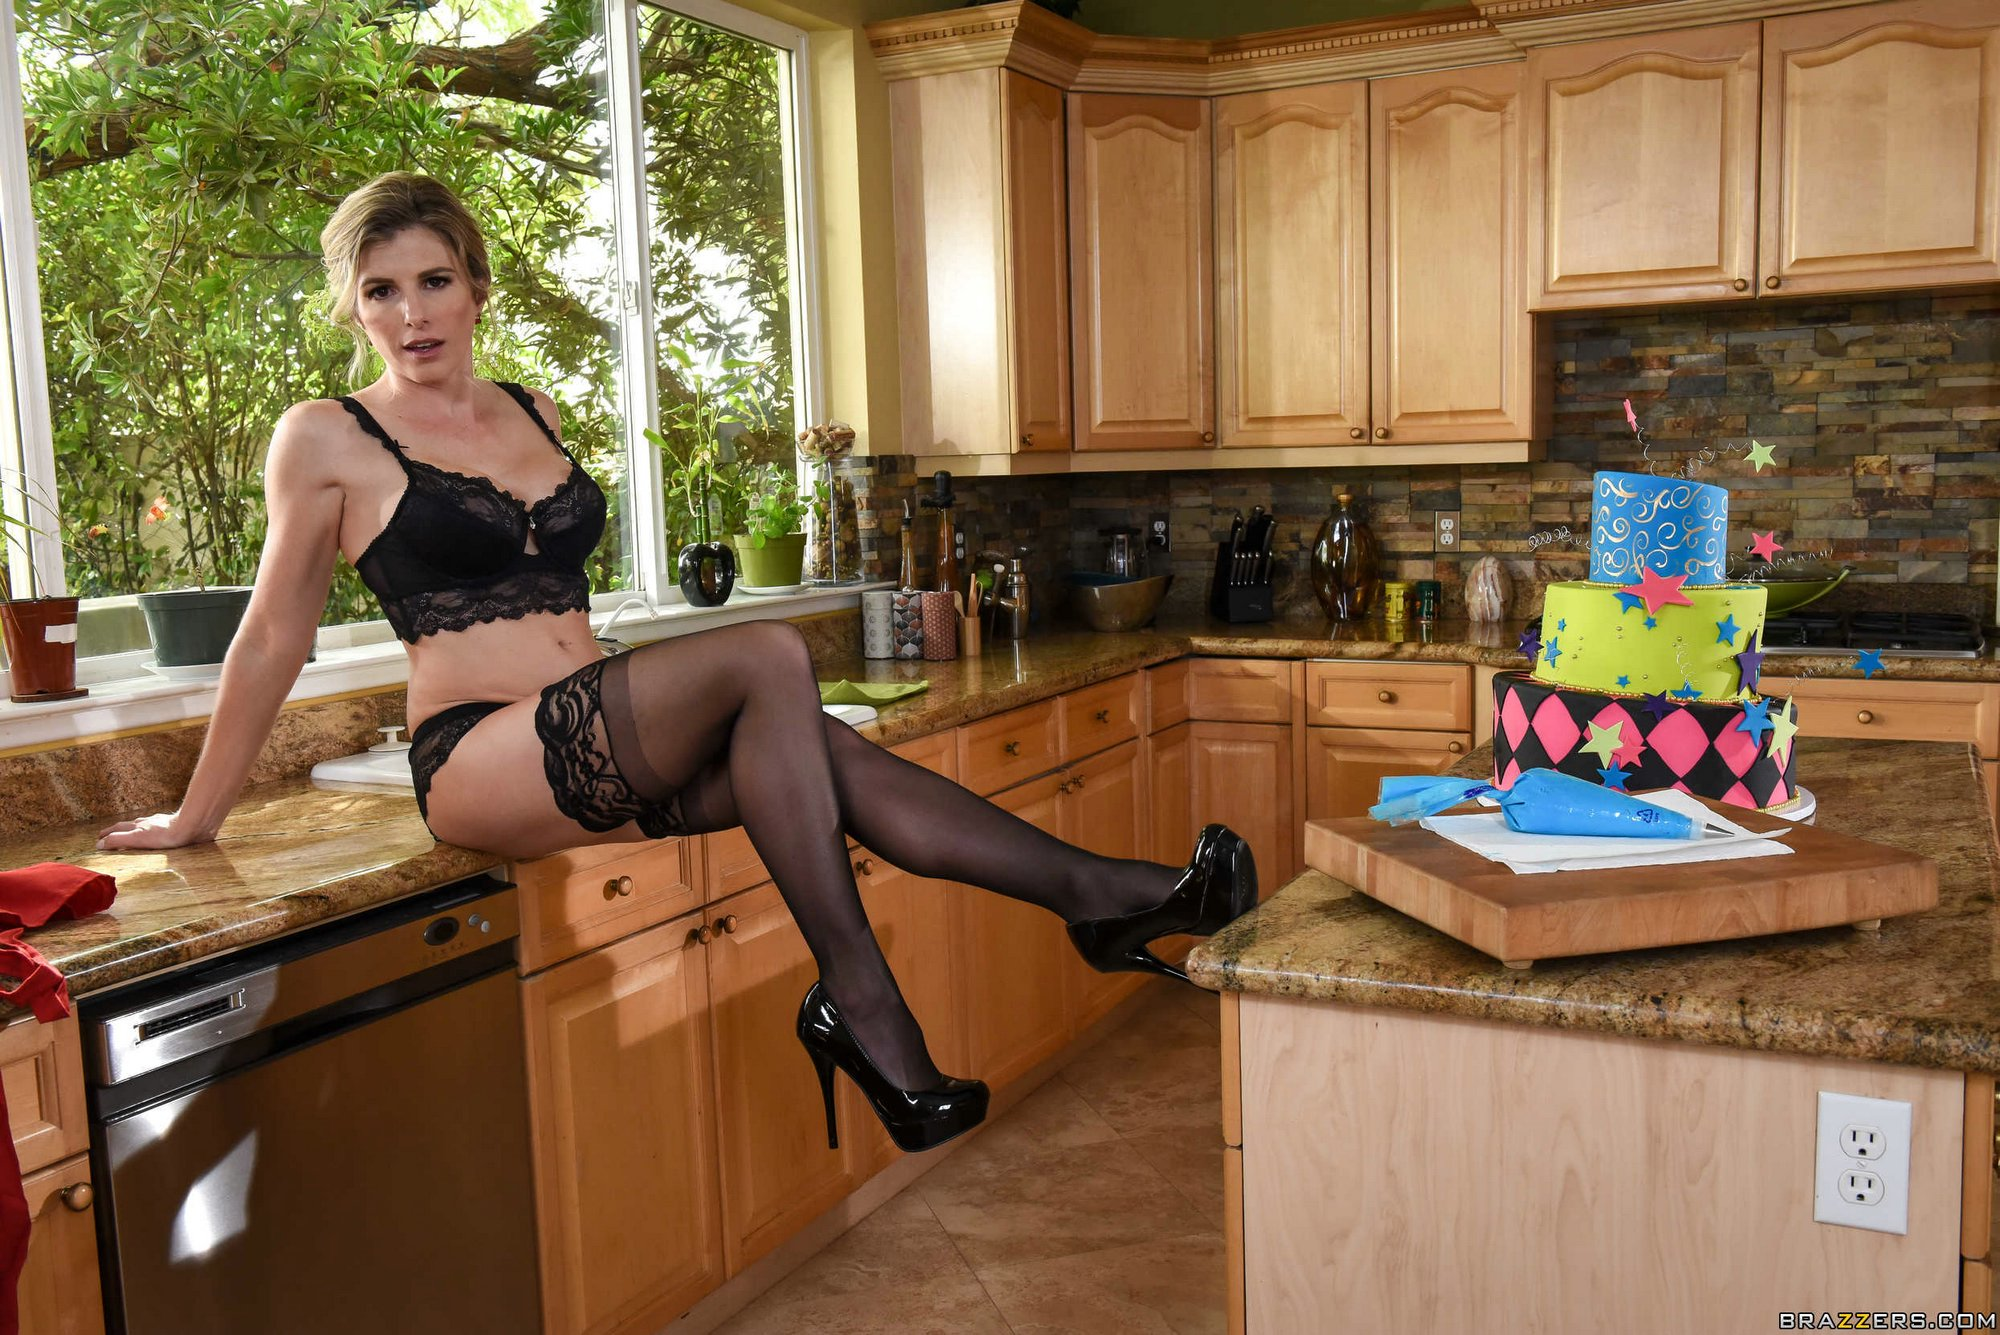 For Pantyhose housewife posing